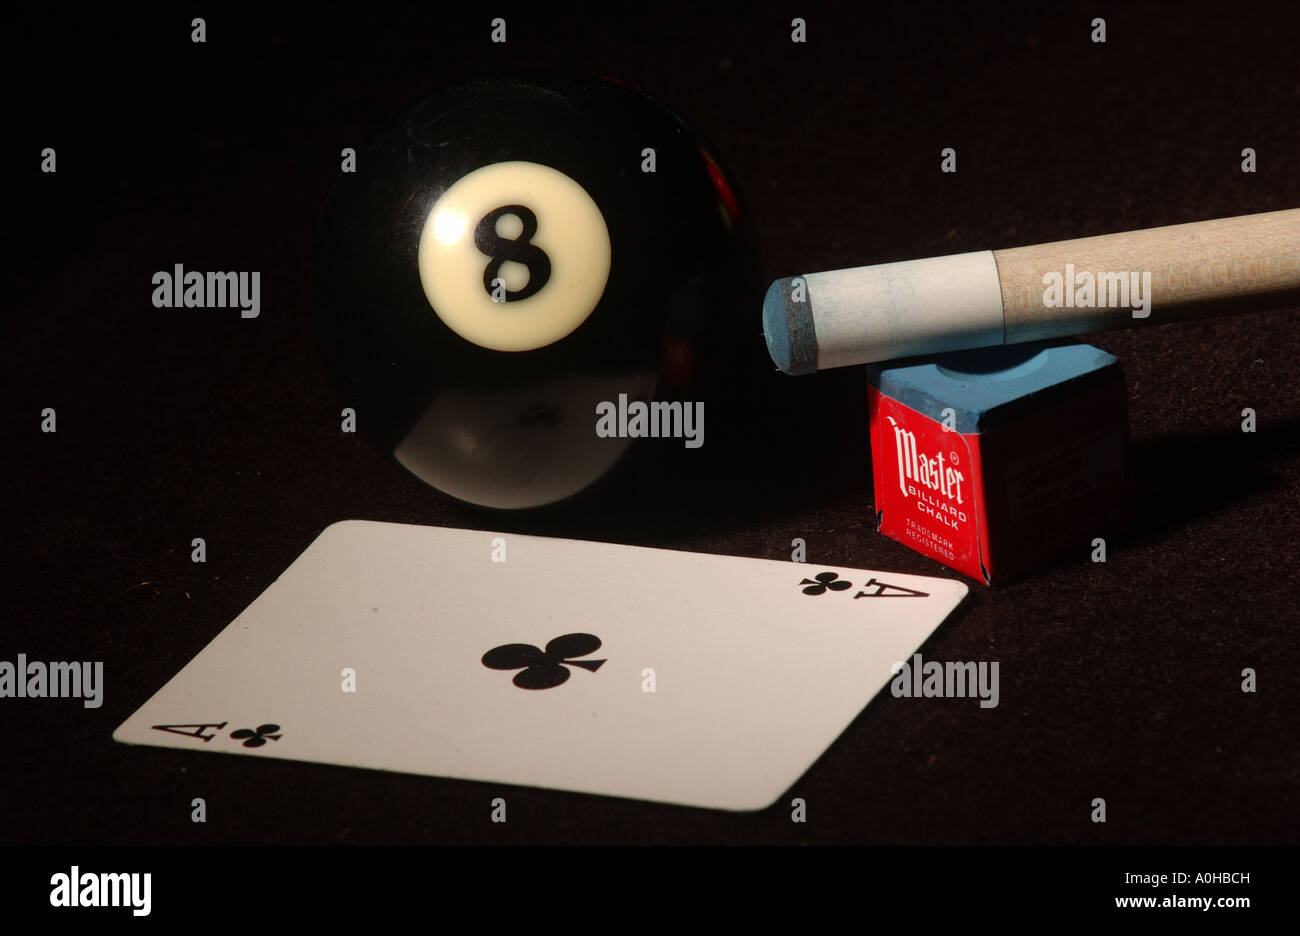 Billiards and cards - Stock Image